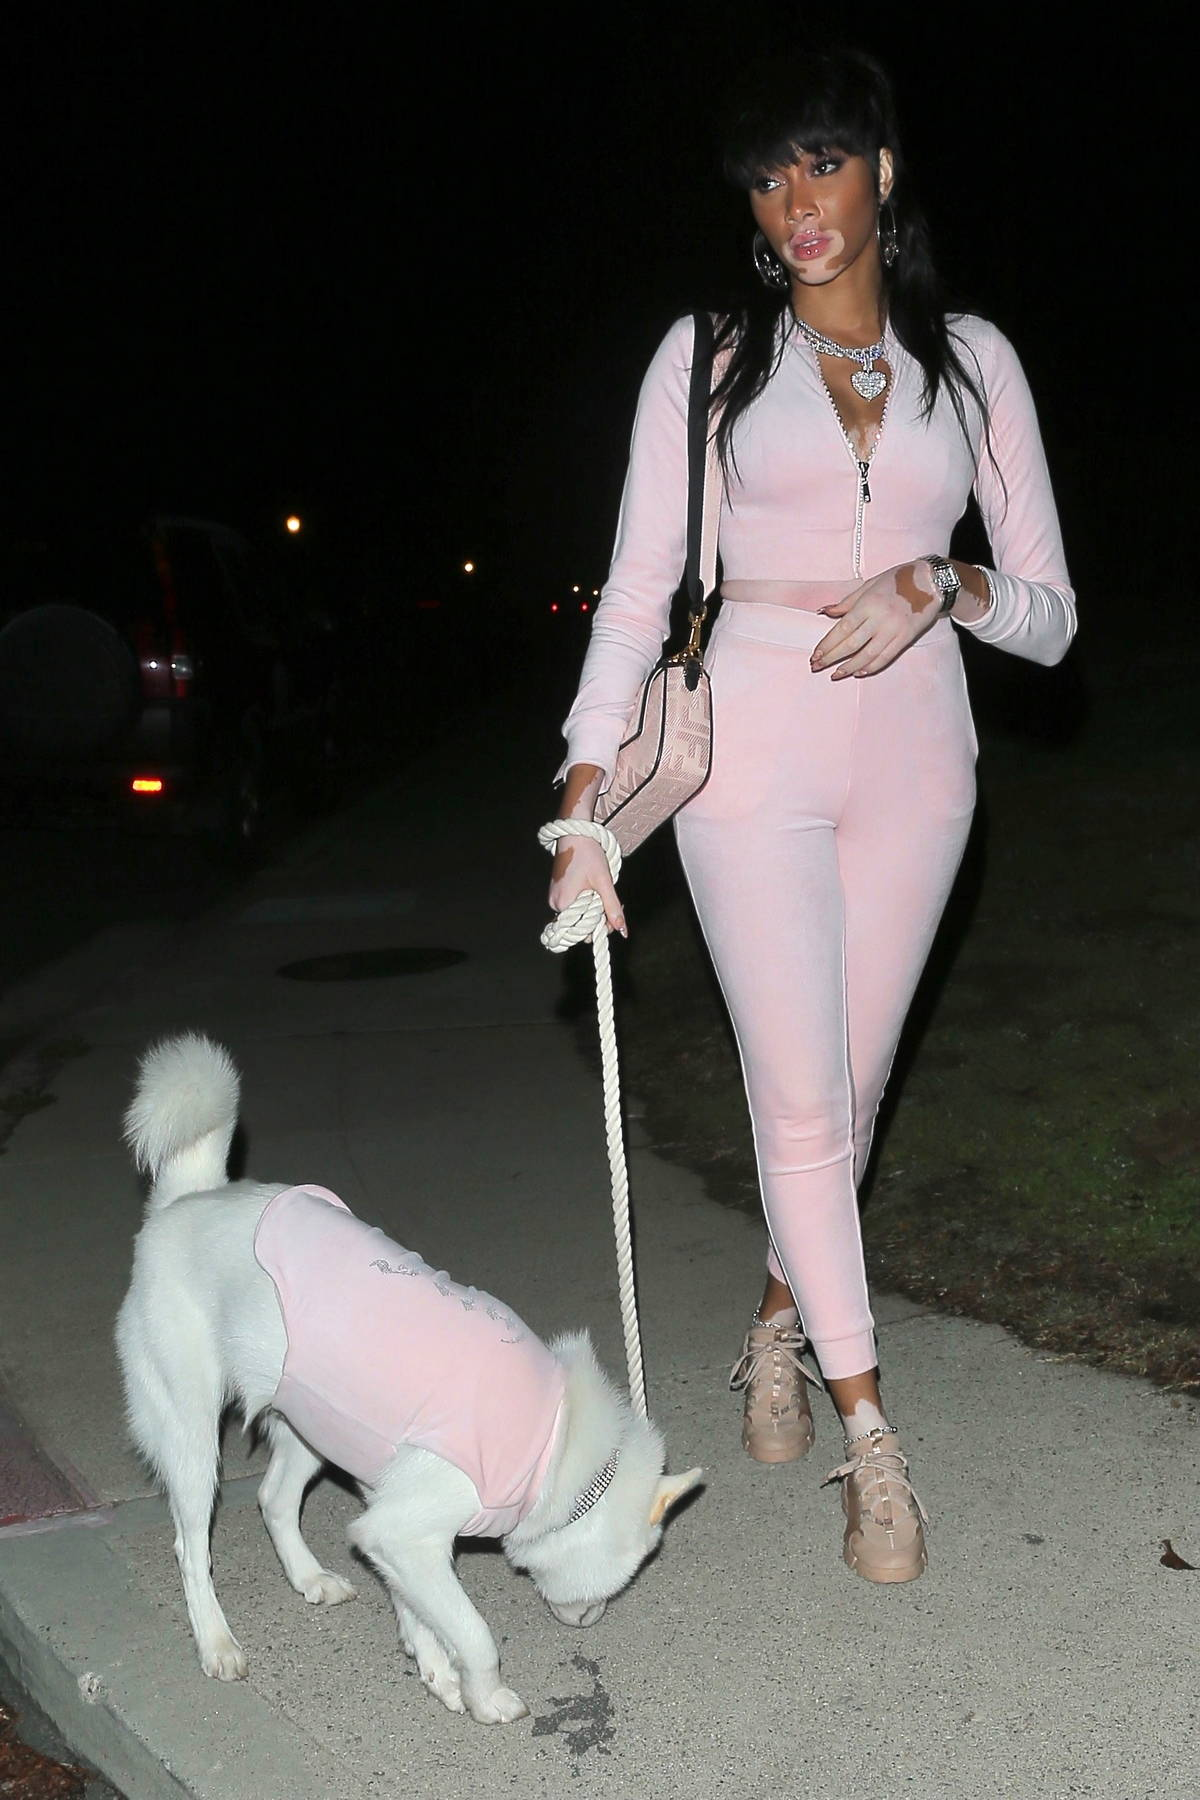 Winnie Harlow looks pretty in pink while out on a late night stroll with her dog in Los Angeles